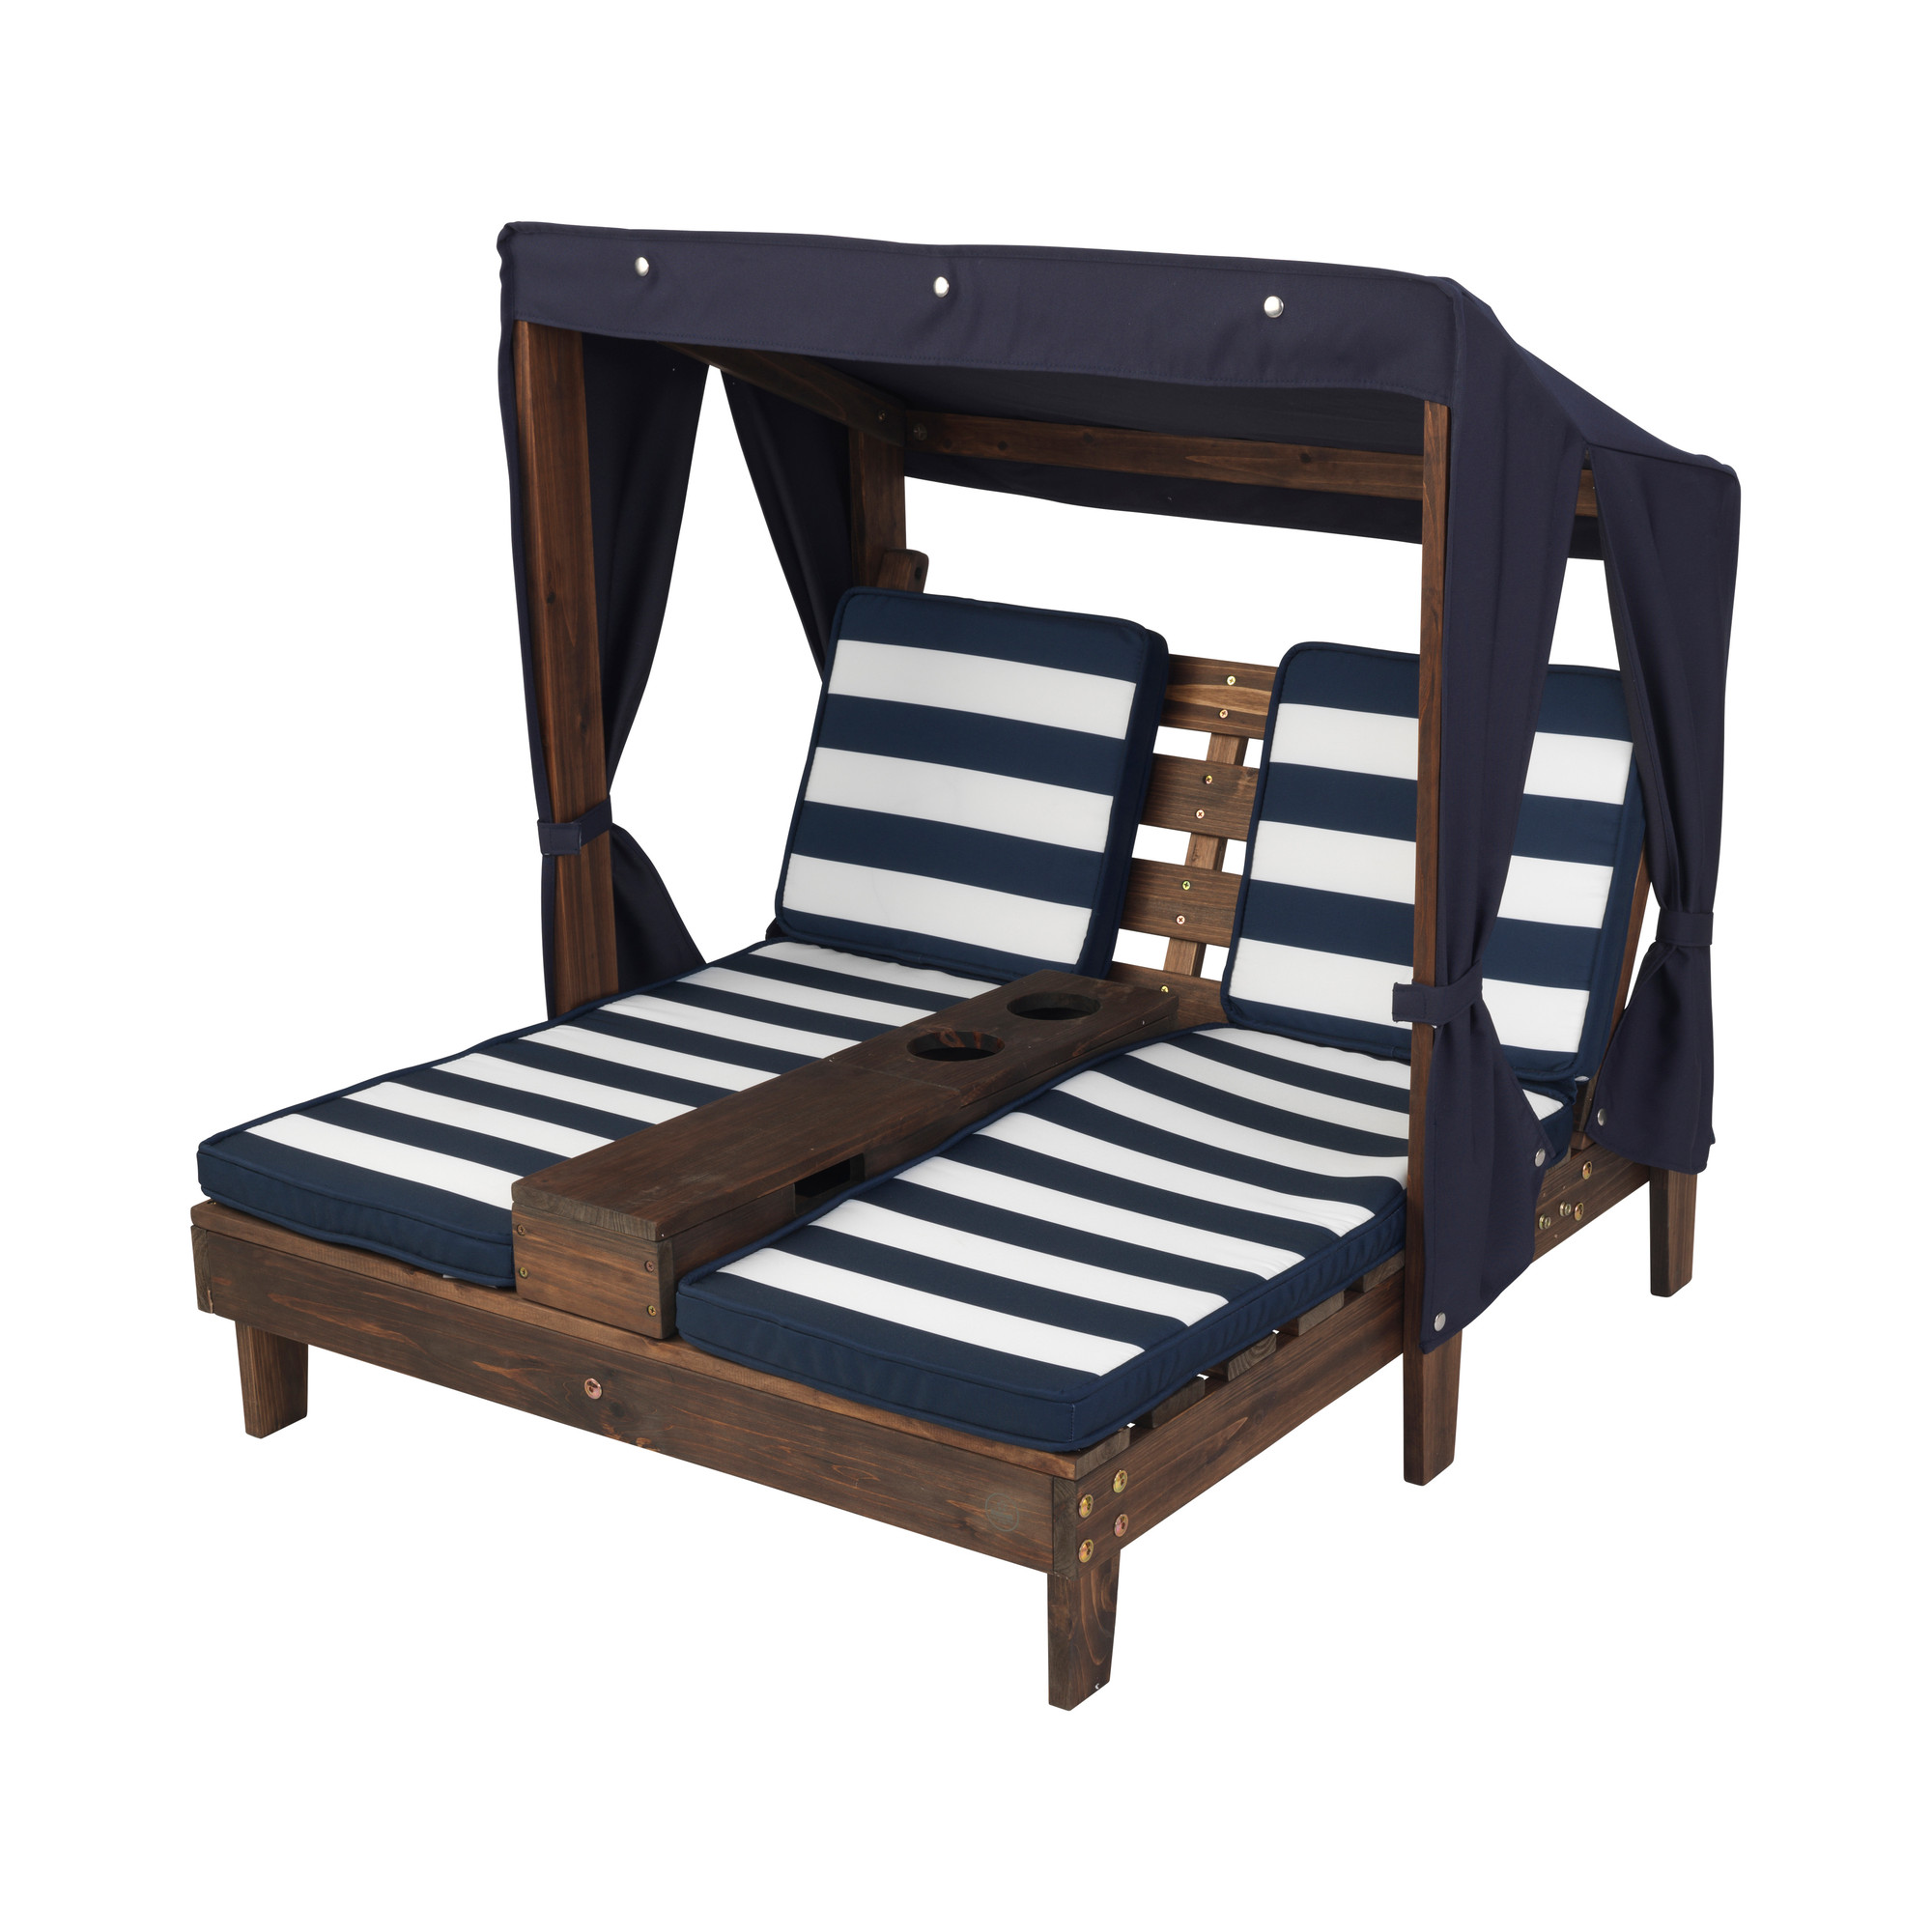 Wooden Double Chaise Lounge With Cup Holders Espresso Color Navy